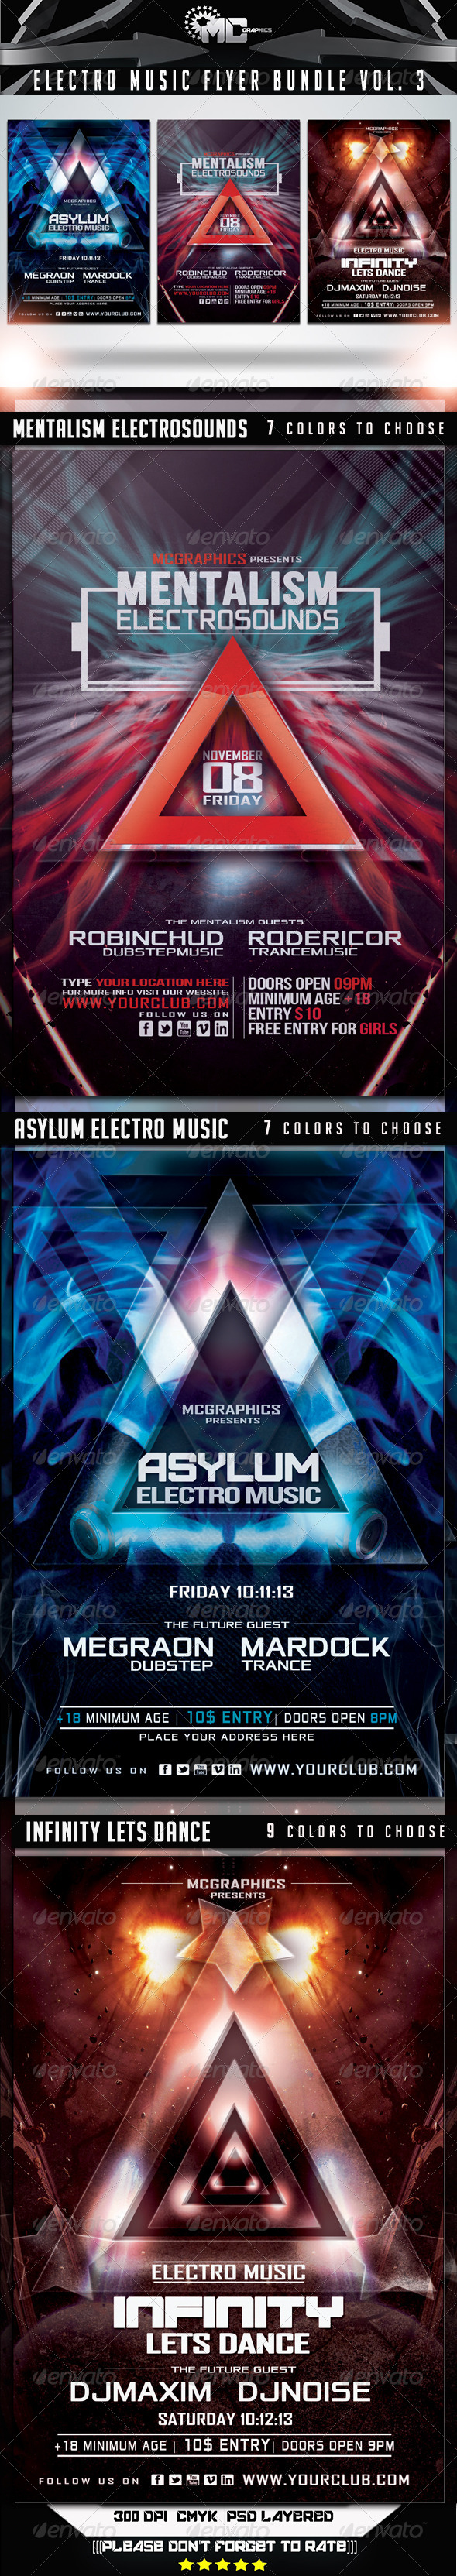 Electro Music Flyer Bundle Vol. 3 - Clubs & Parties Events